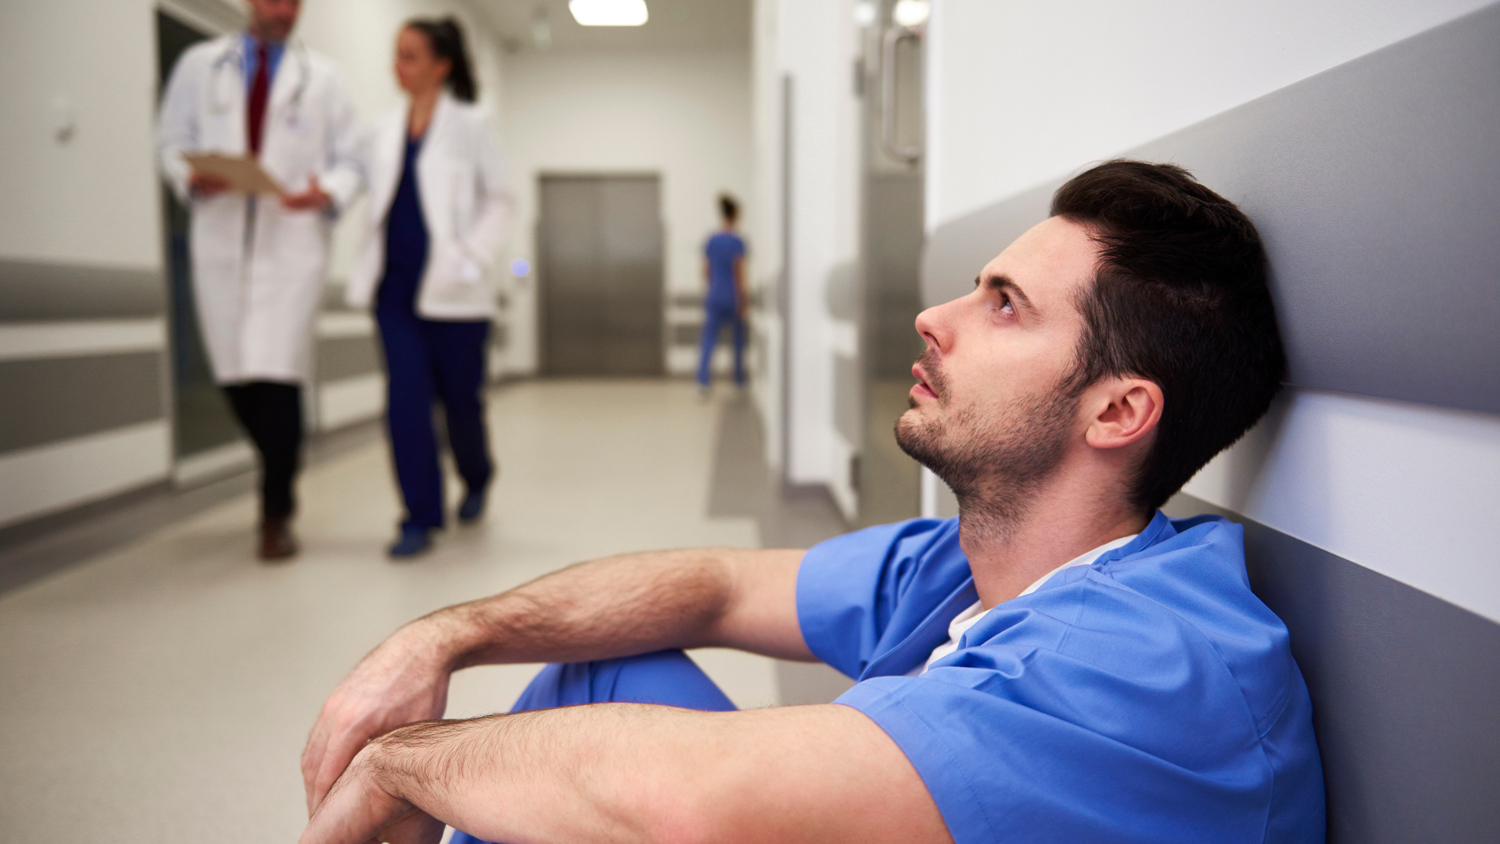 5 Steps to Prevent Workplace Violence in Healthcare